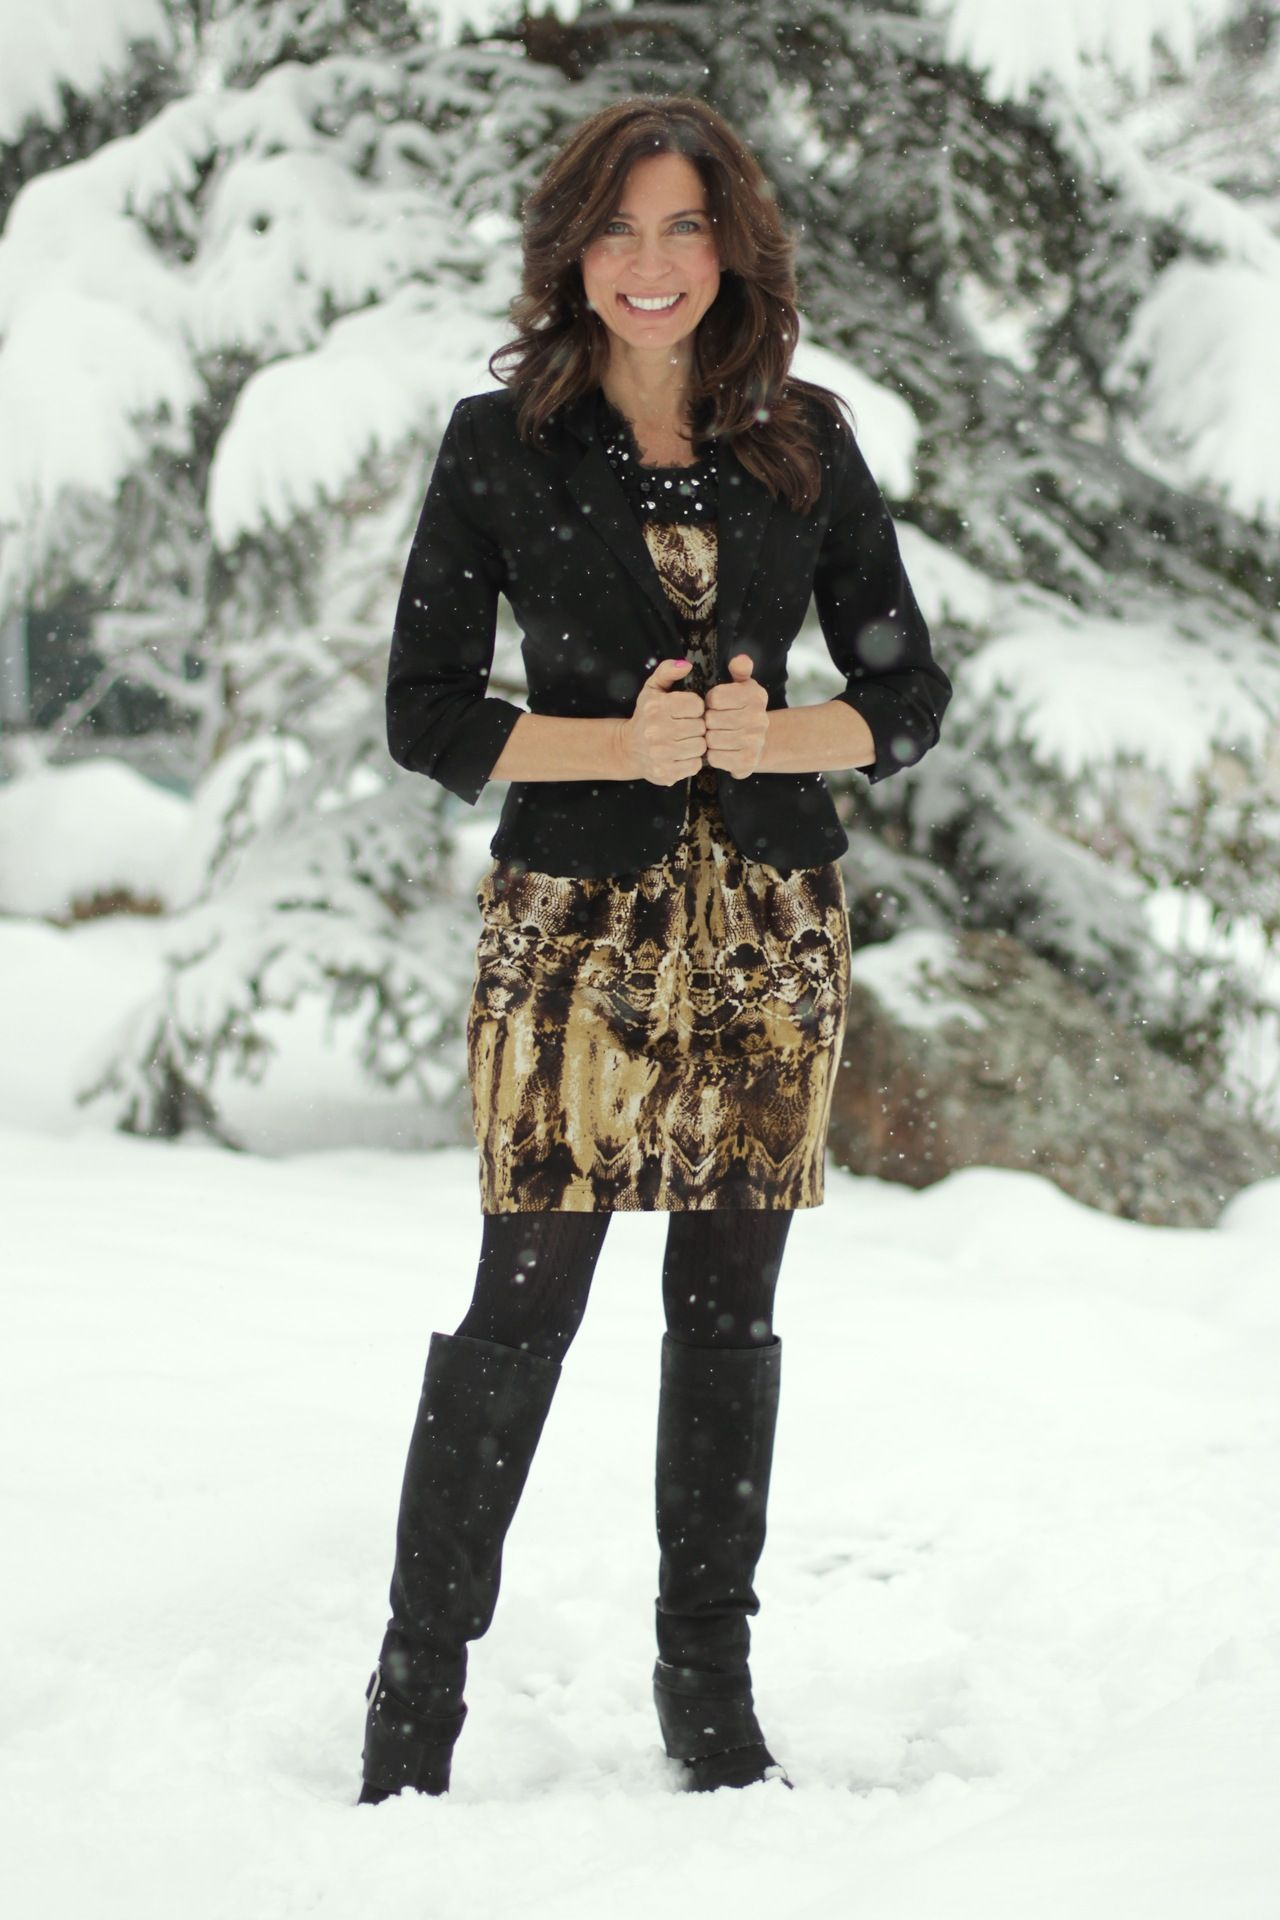 Winter Work Wear Tall Boots Tights And Black Jacket In The Snow Winter Work Wear Winter Outfits Winter Skirt Outfit [ 1920 x 1280 Pixel ]